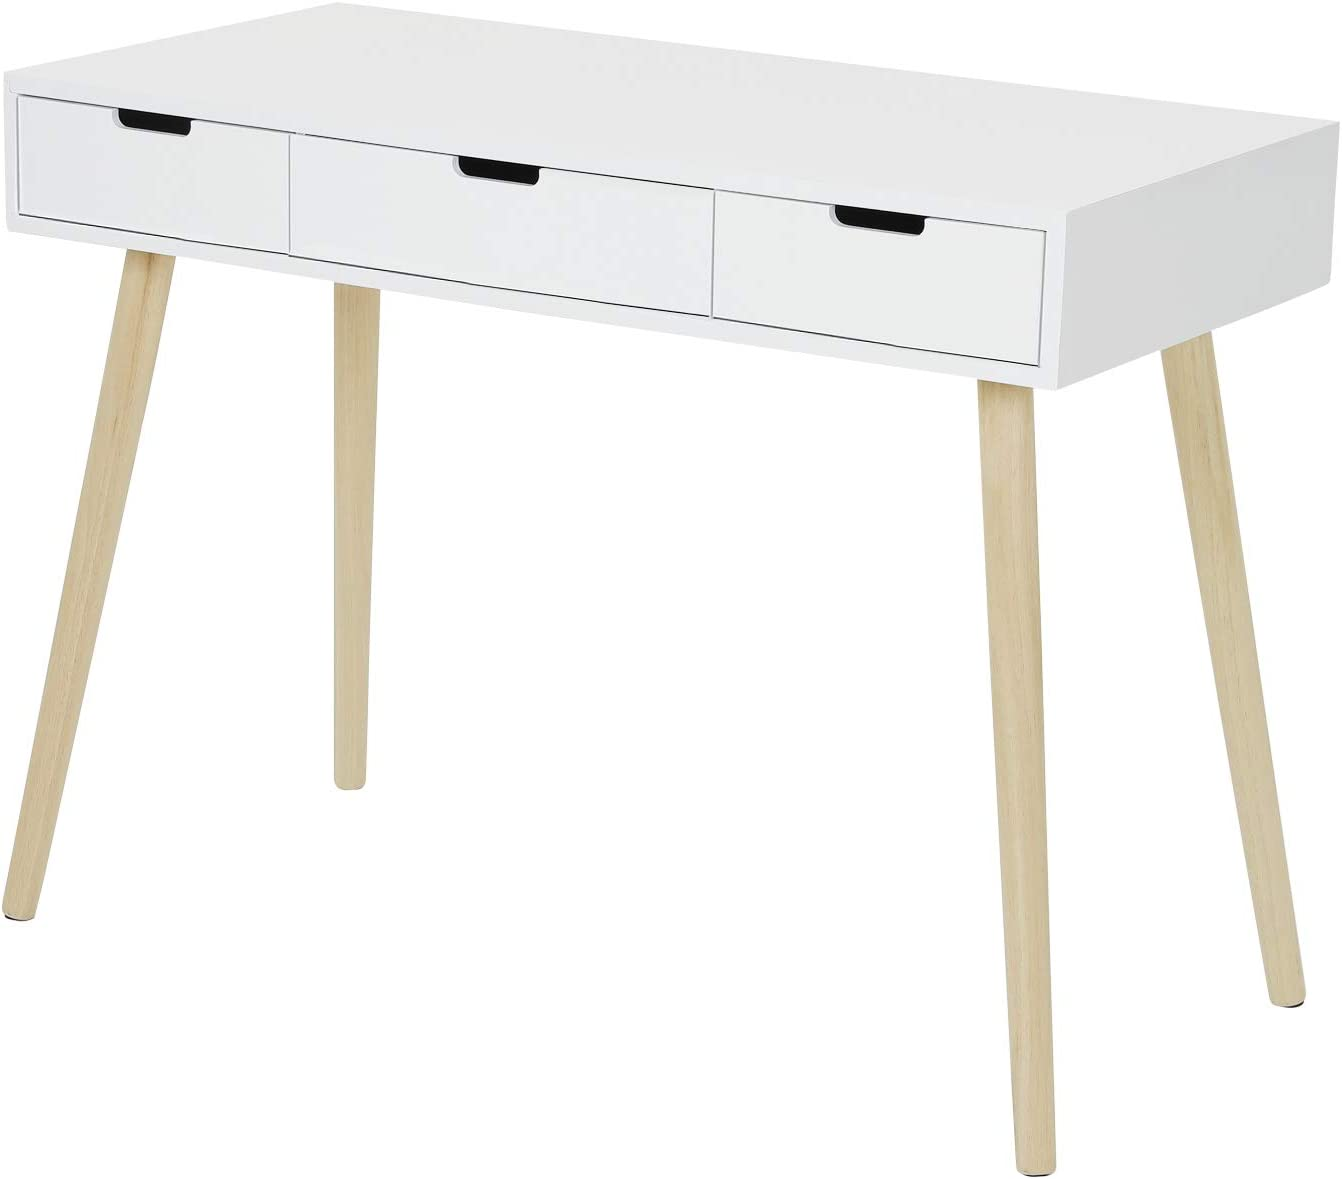 Amazon Com Tiptiper Writing Desk With 3 Drawers Modern Home Office Desk With Large Storage Space Study Desk With Oak Legs For Small Space White Kitchen Dining